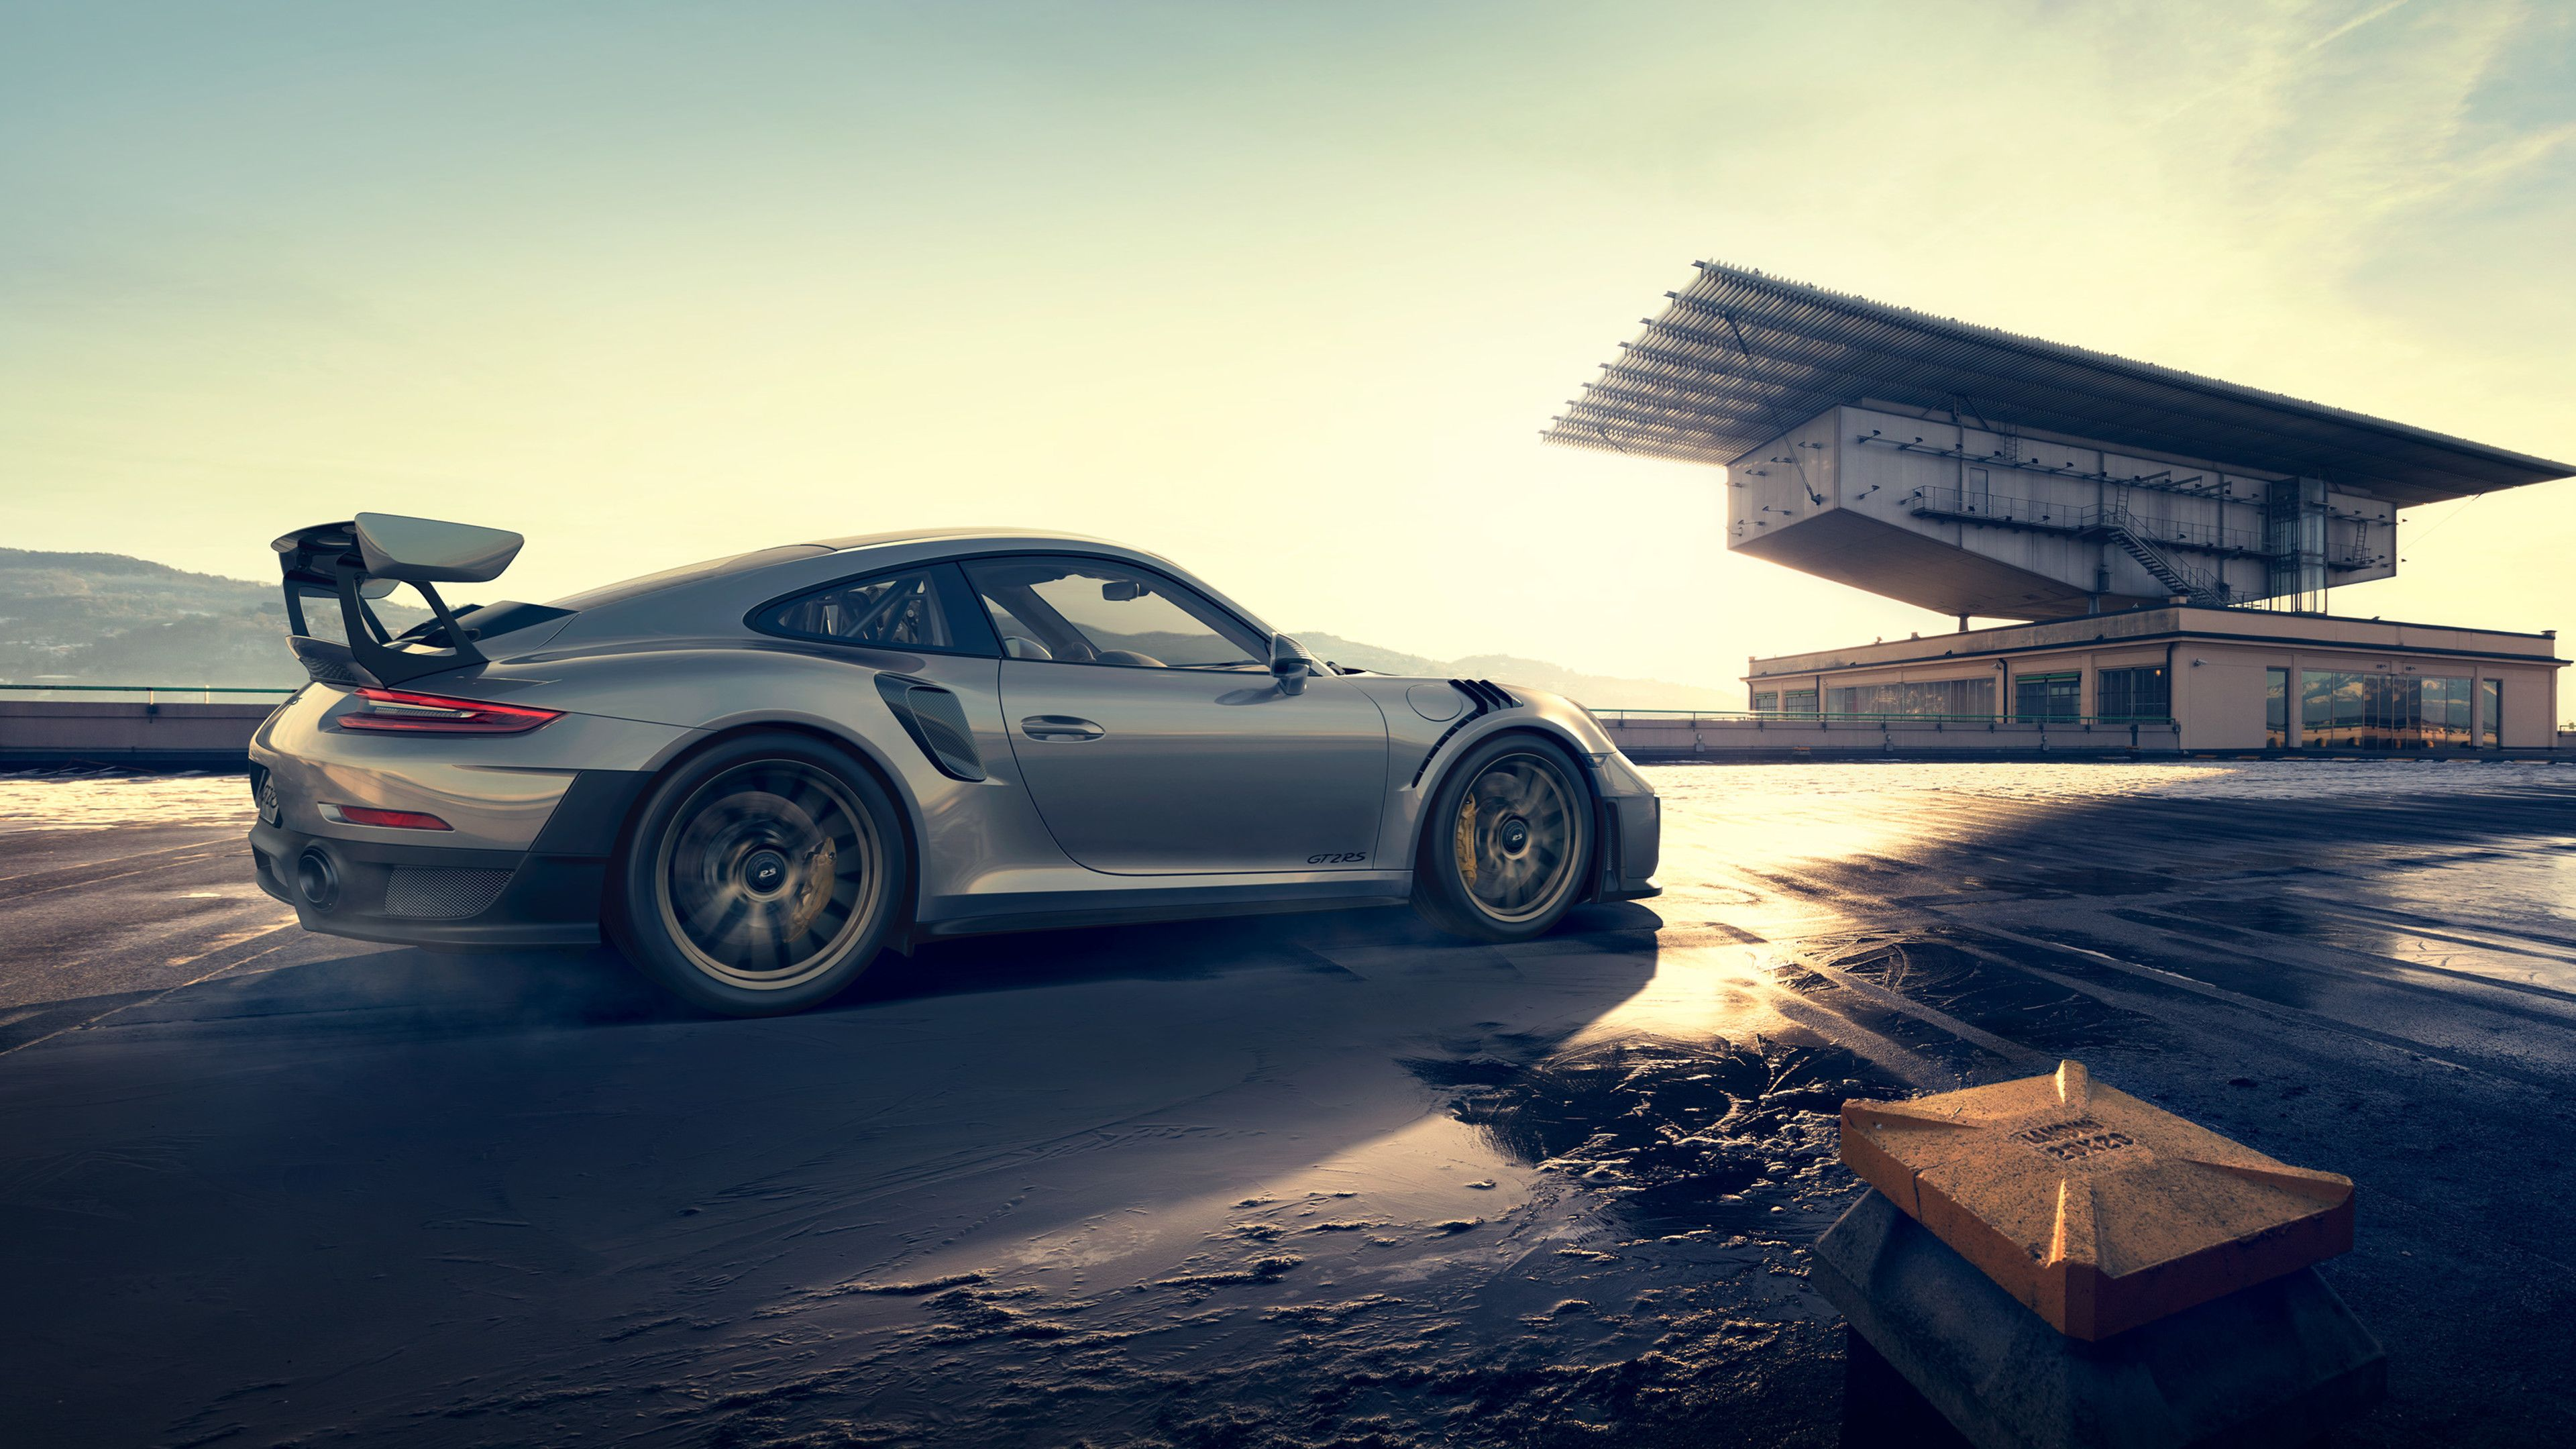 Porsche Gt2 Rs 4k Porsche Wallpapers Hd Wallpapers Cars Wallpapers Behance Wallpapers 4k Wallpapers Porsche Racing Rooftop